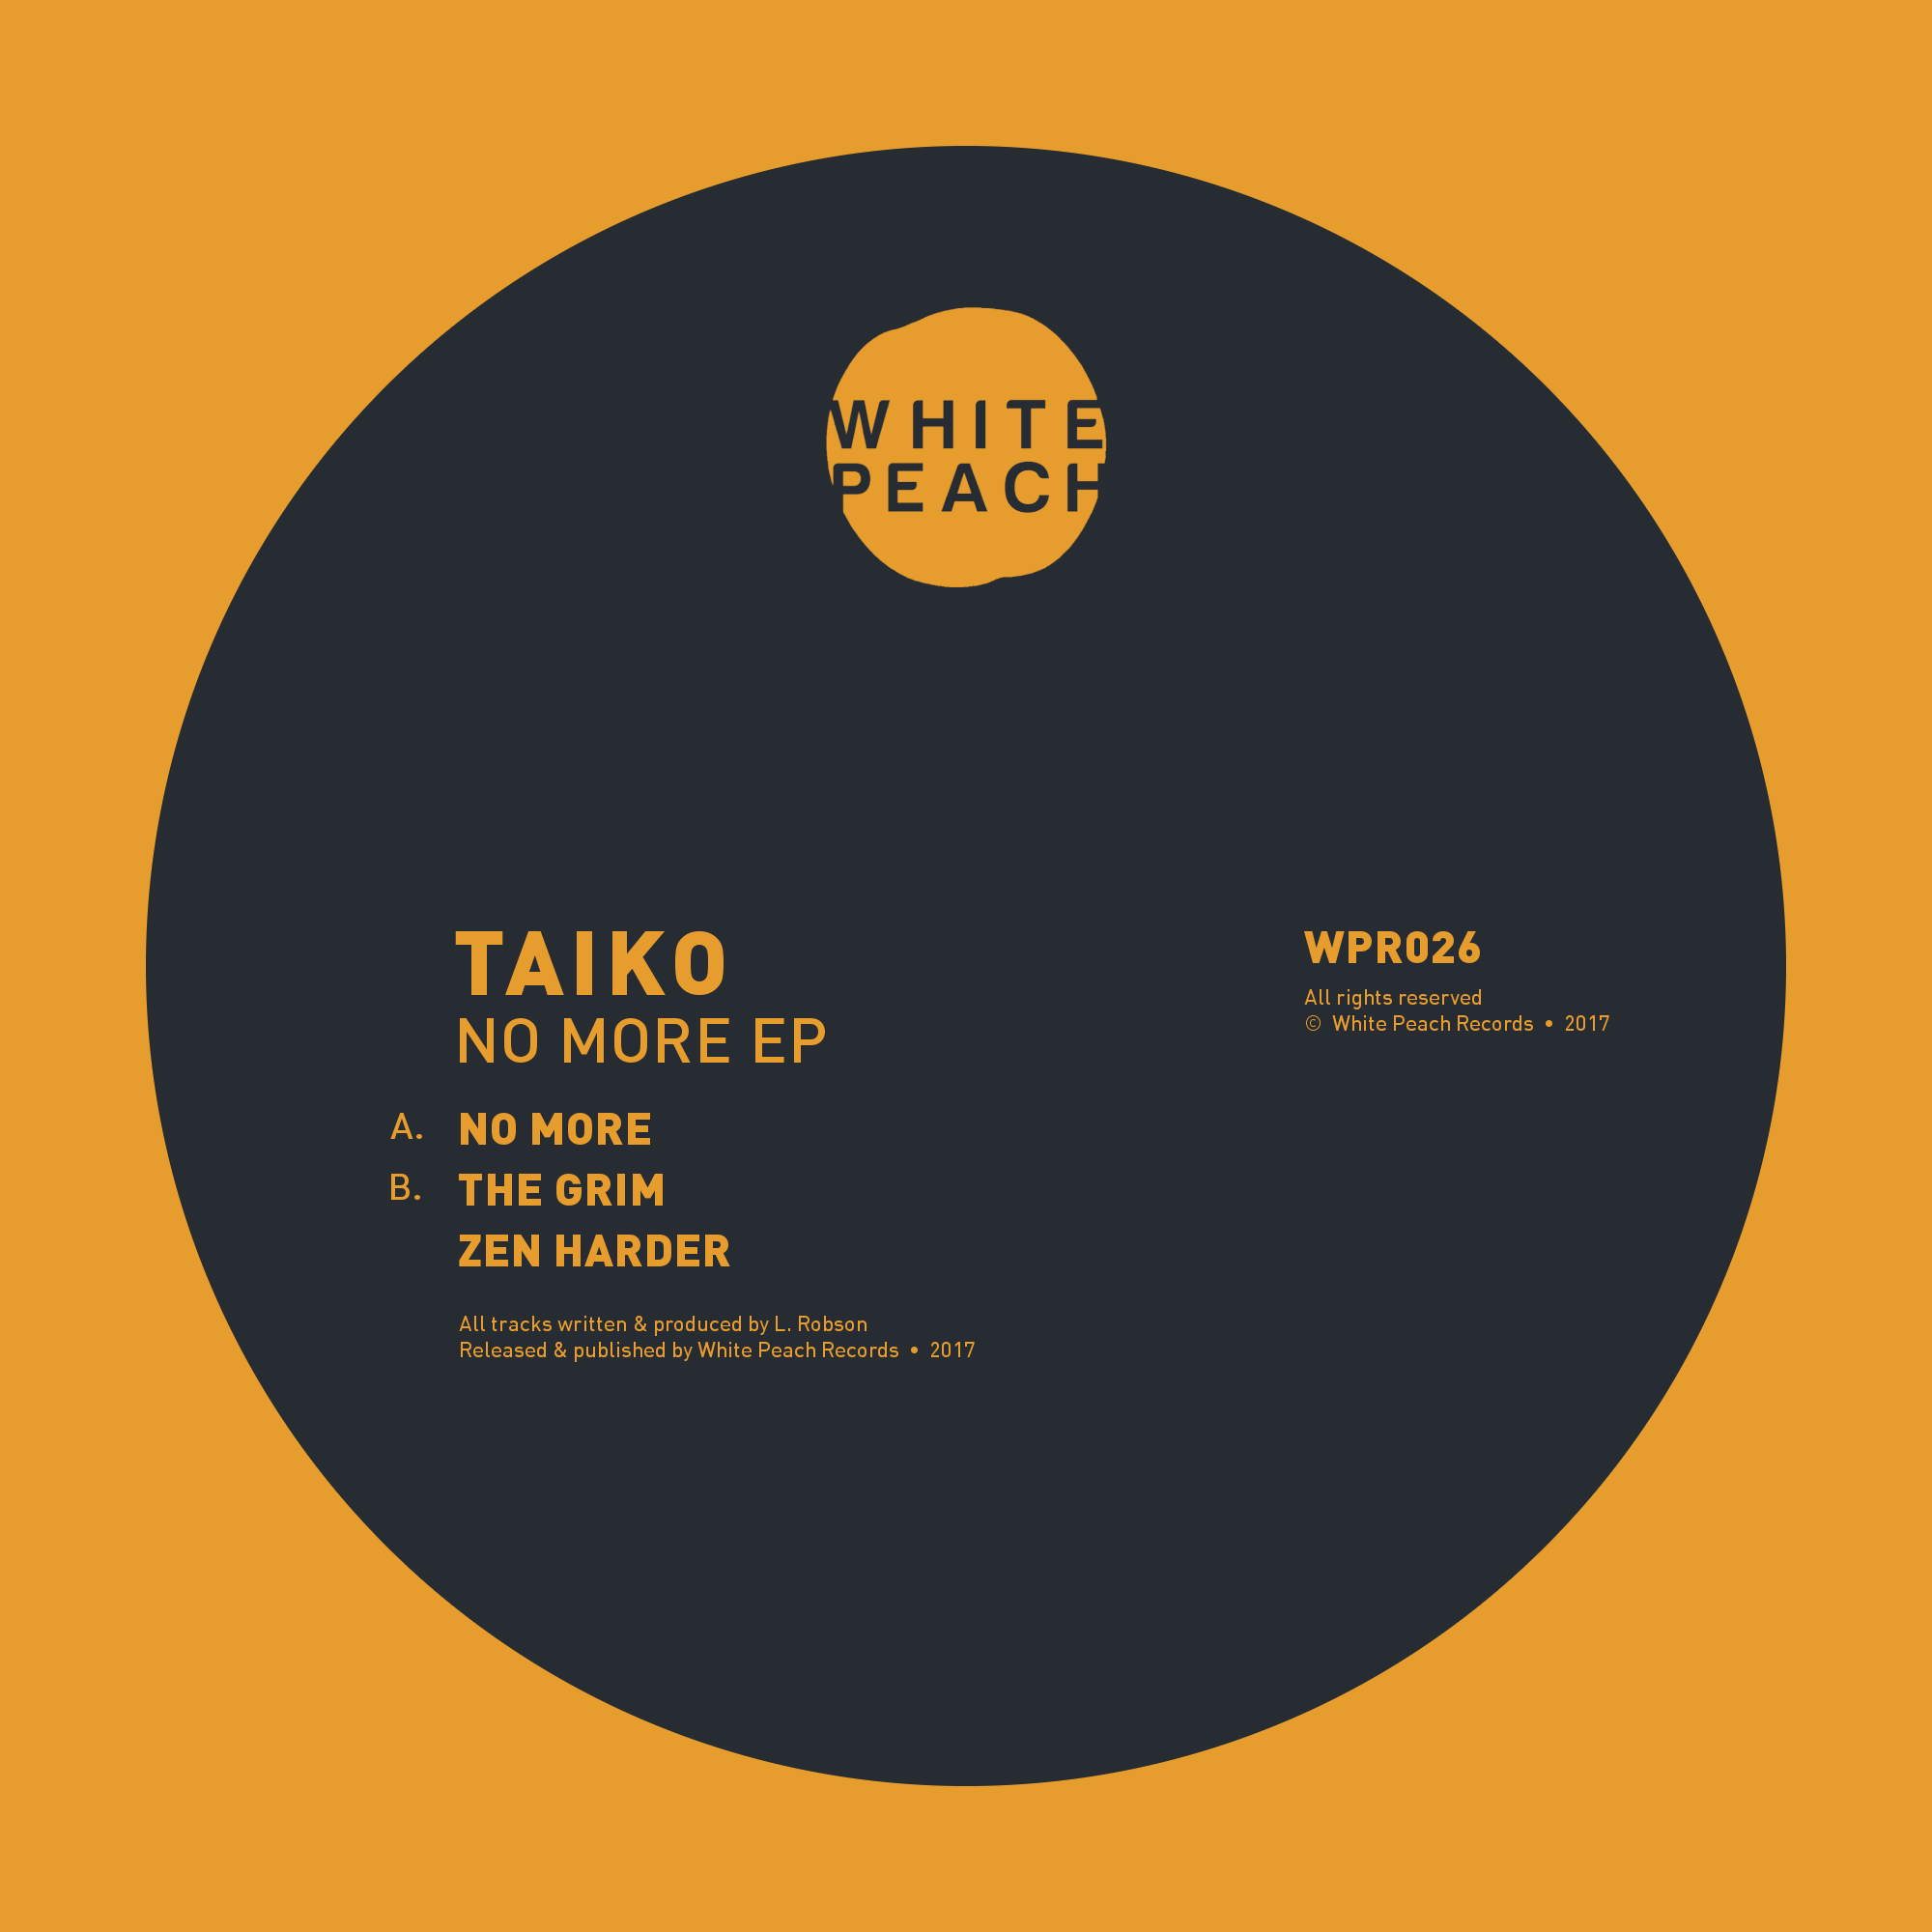 WPR026 (Taiko - No More EP, digital artwork).png